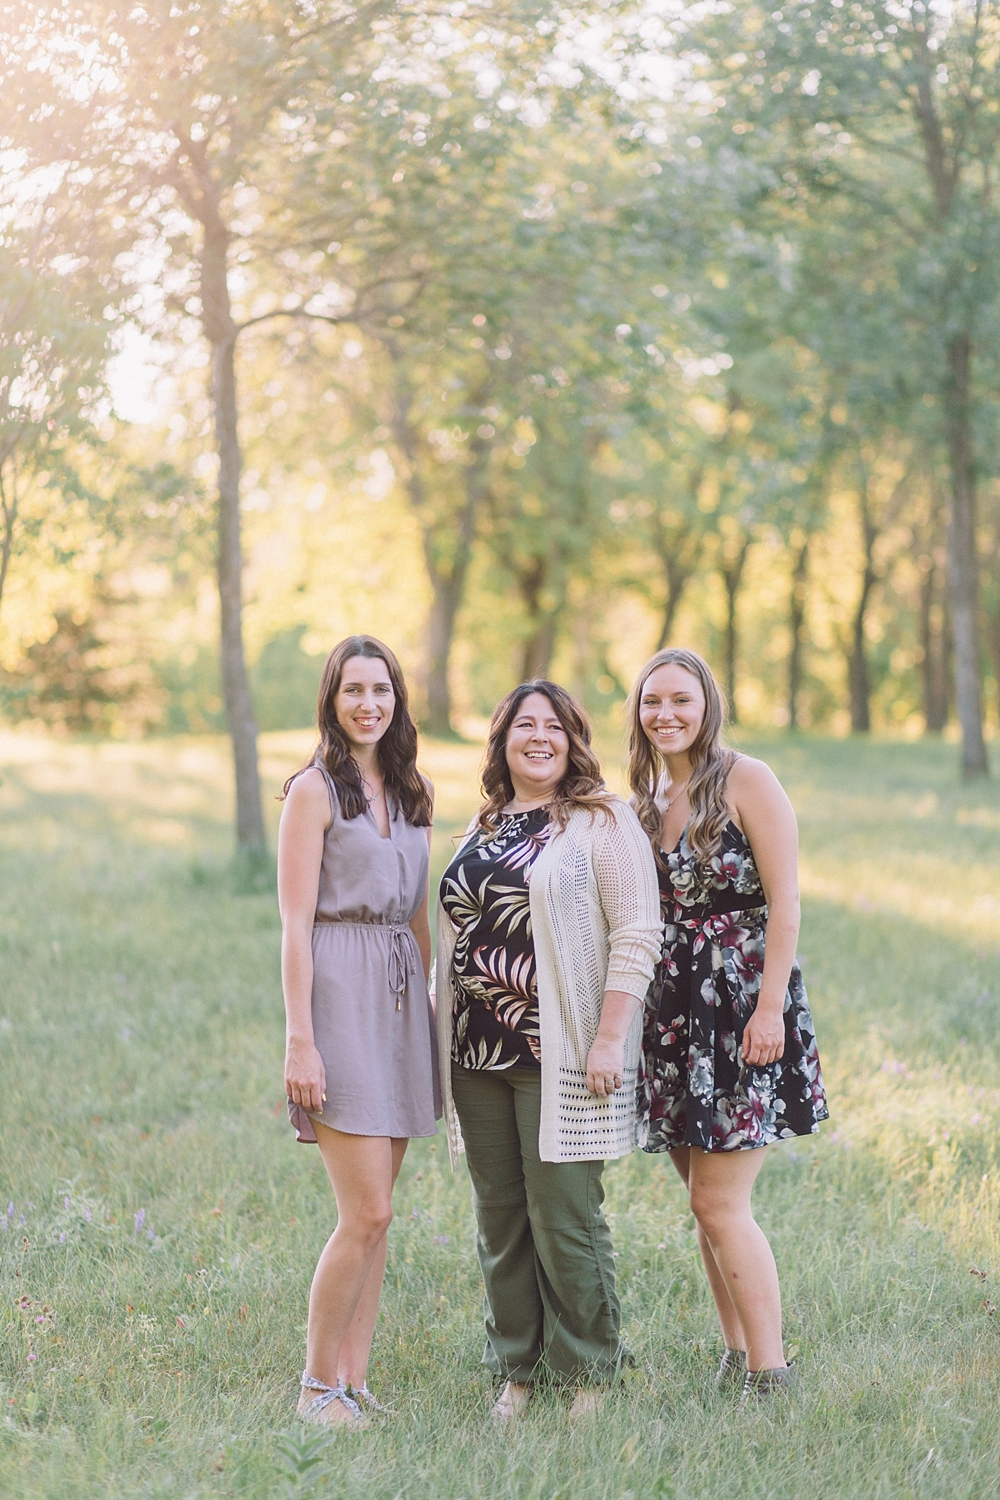 The Gibsons,family photography winnipeg: winnipeg family photographers,golden hour family shoot,henteleff park,